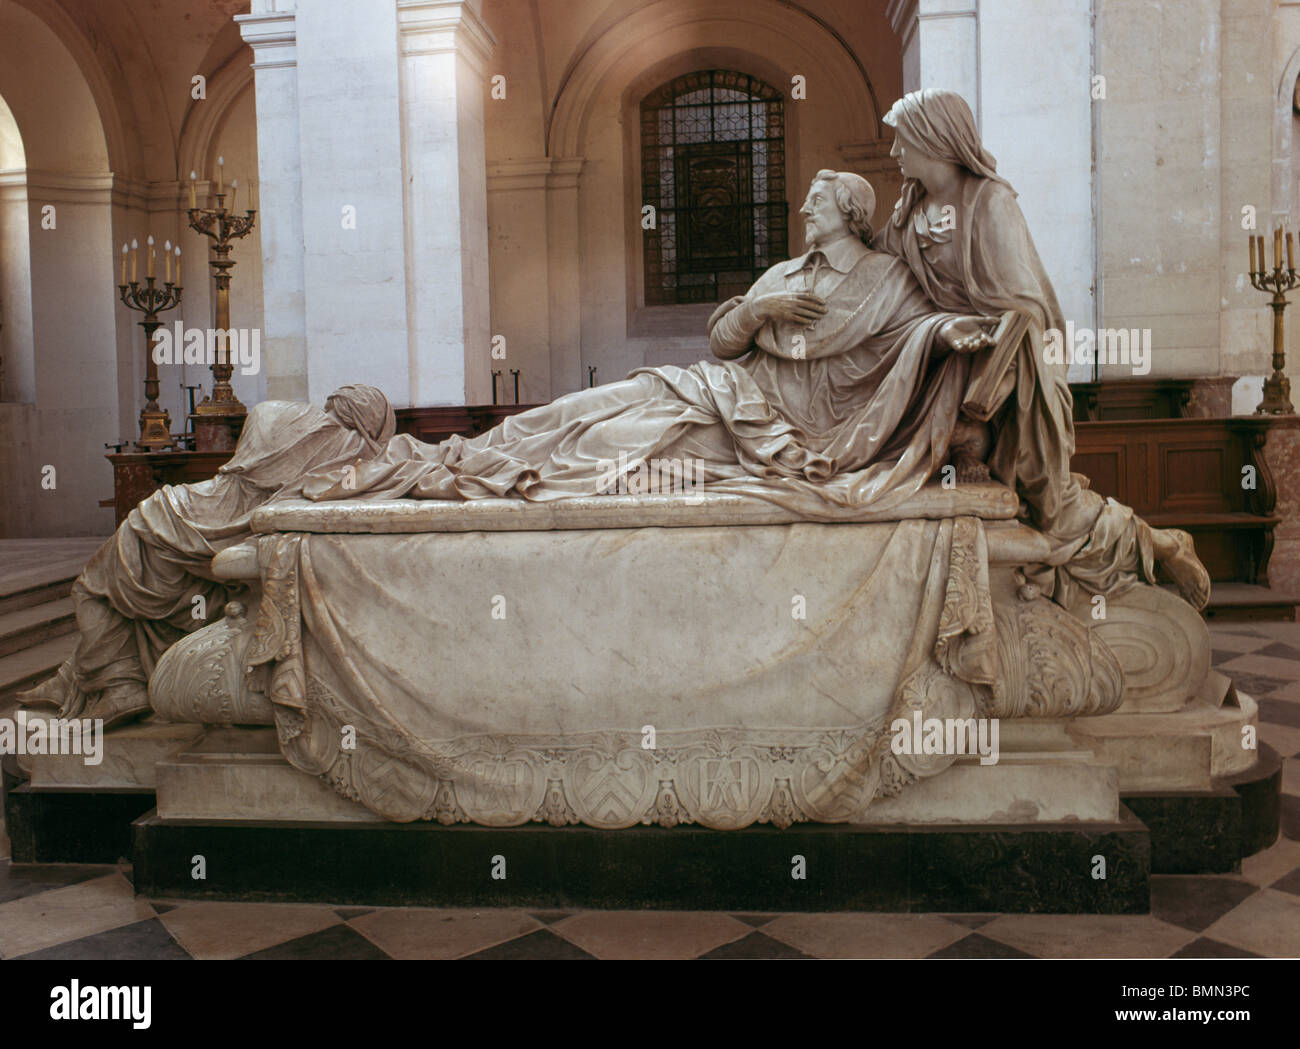 Sorbonne, Paris, France. Tomb of Cardinal Richelieu carved by Girardon in 1694 to drawings by Le Brun. - Stock Image